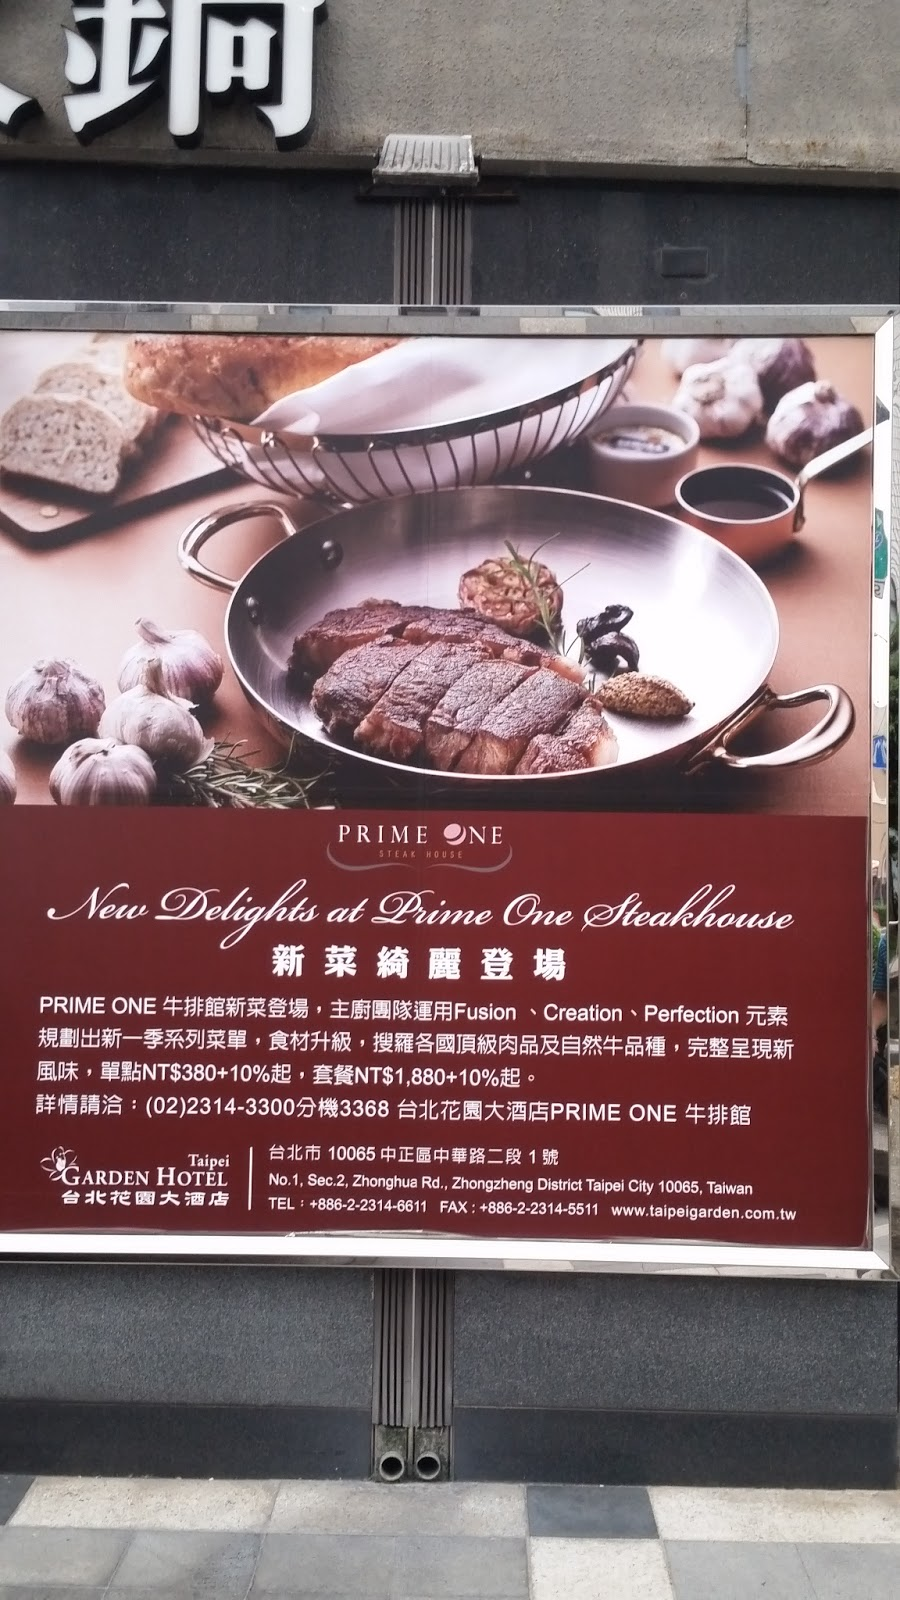 Lets Soar With Eagles Prime One Steak House Taipei Garden Hotel Gourmet Dining Intimate Dining Best Restaurant In Taipei Taiwan